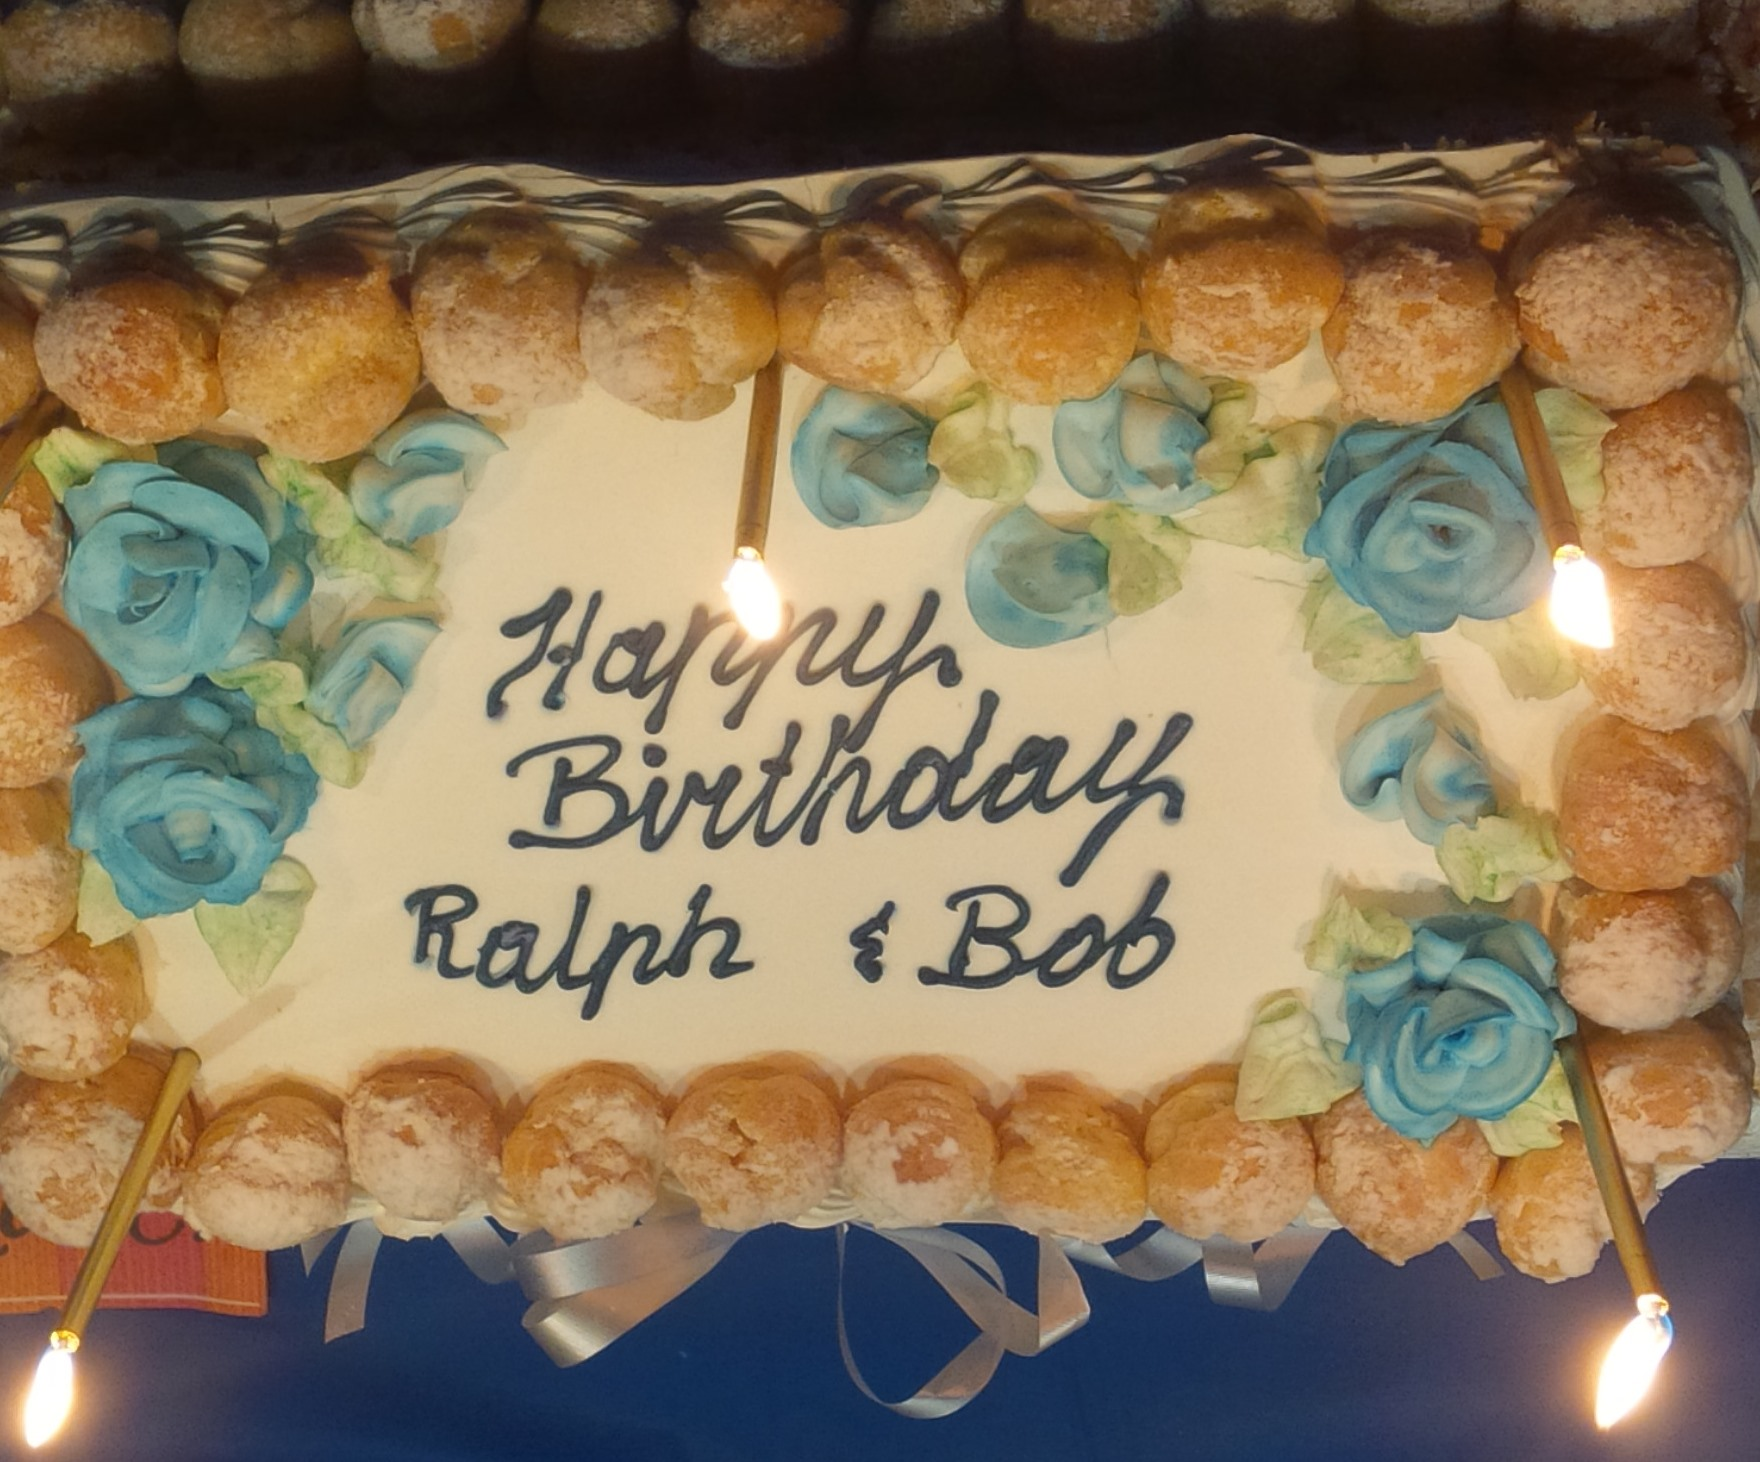 Happy Th Birthday Ralph Fenik And Bob McGlynn McKellar - Happy birthday bob cake